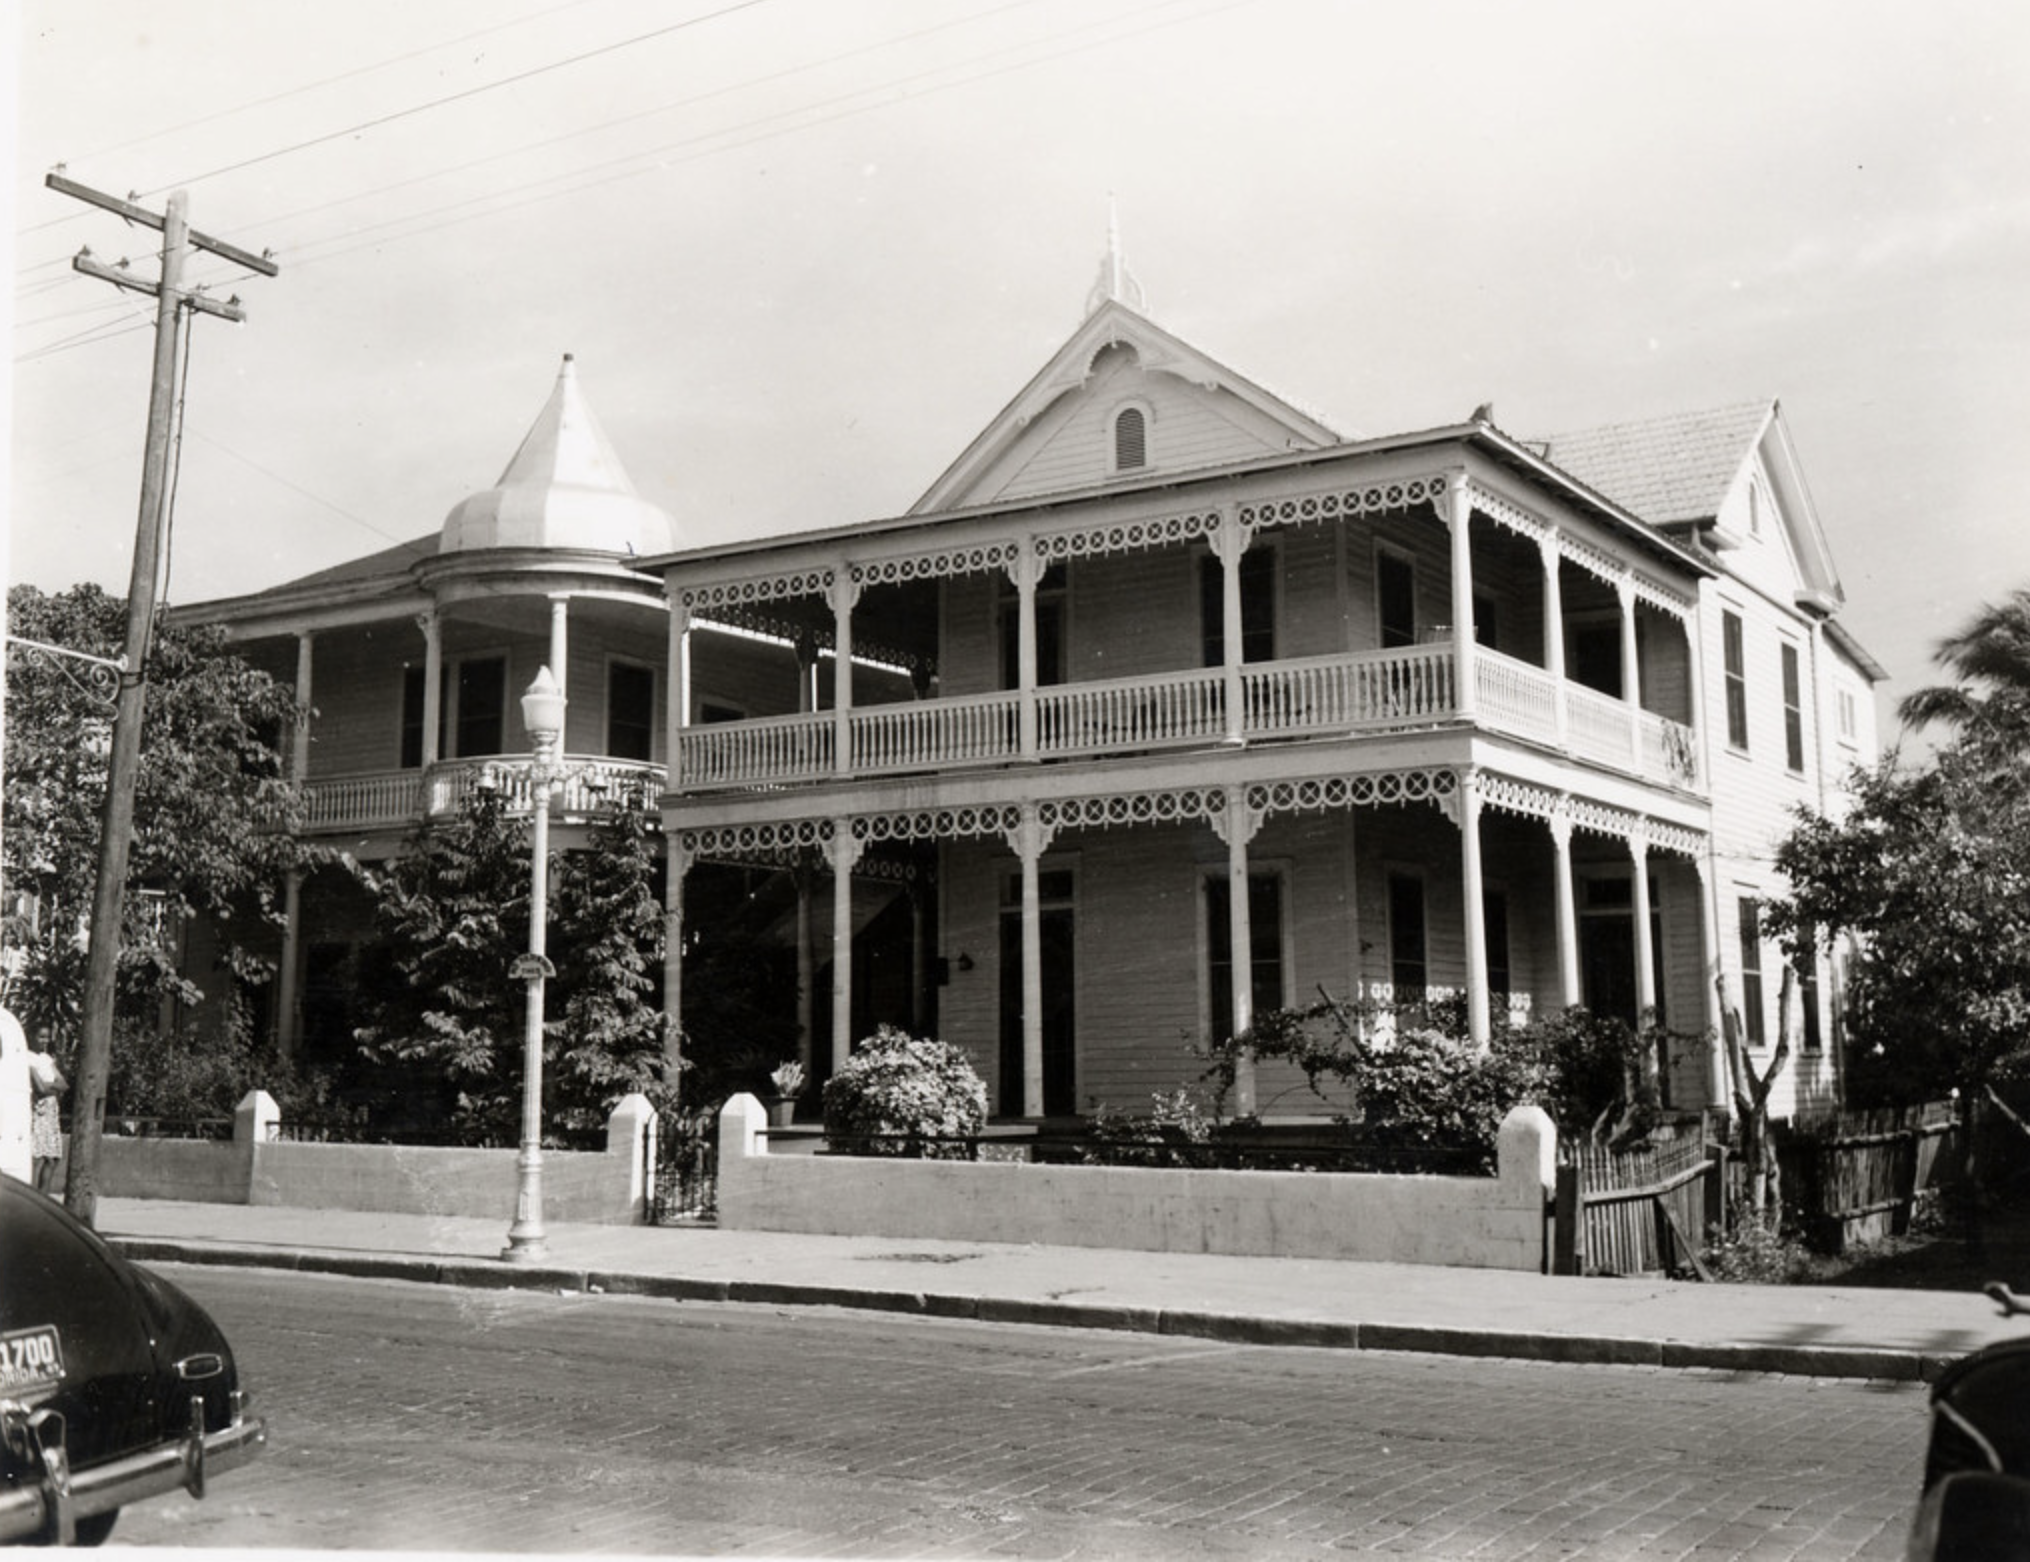 The house at 915 Duval Street C 1970. From the Ida Woodward Barron Collection. Florida Keys Public Libraries.